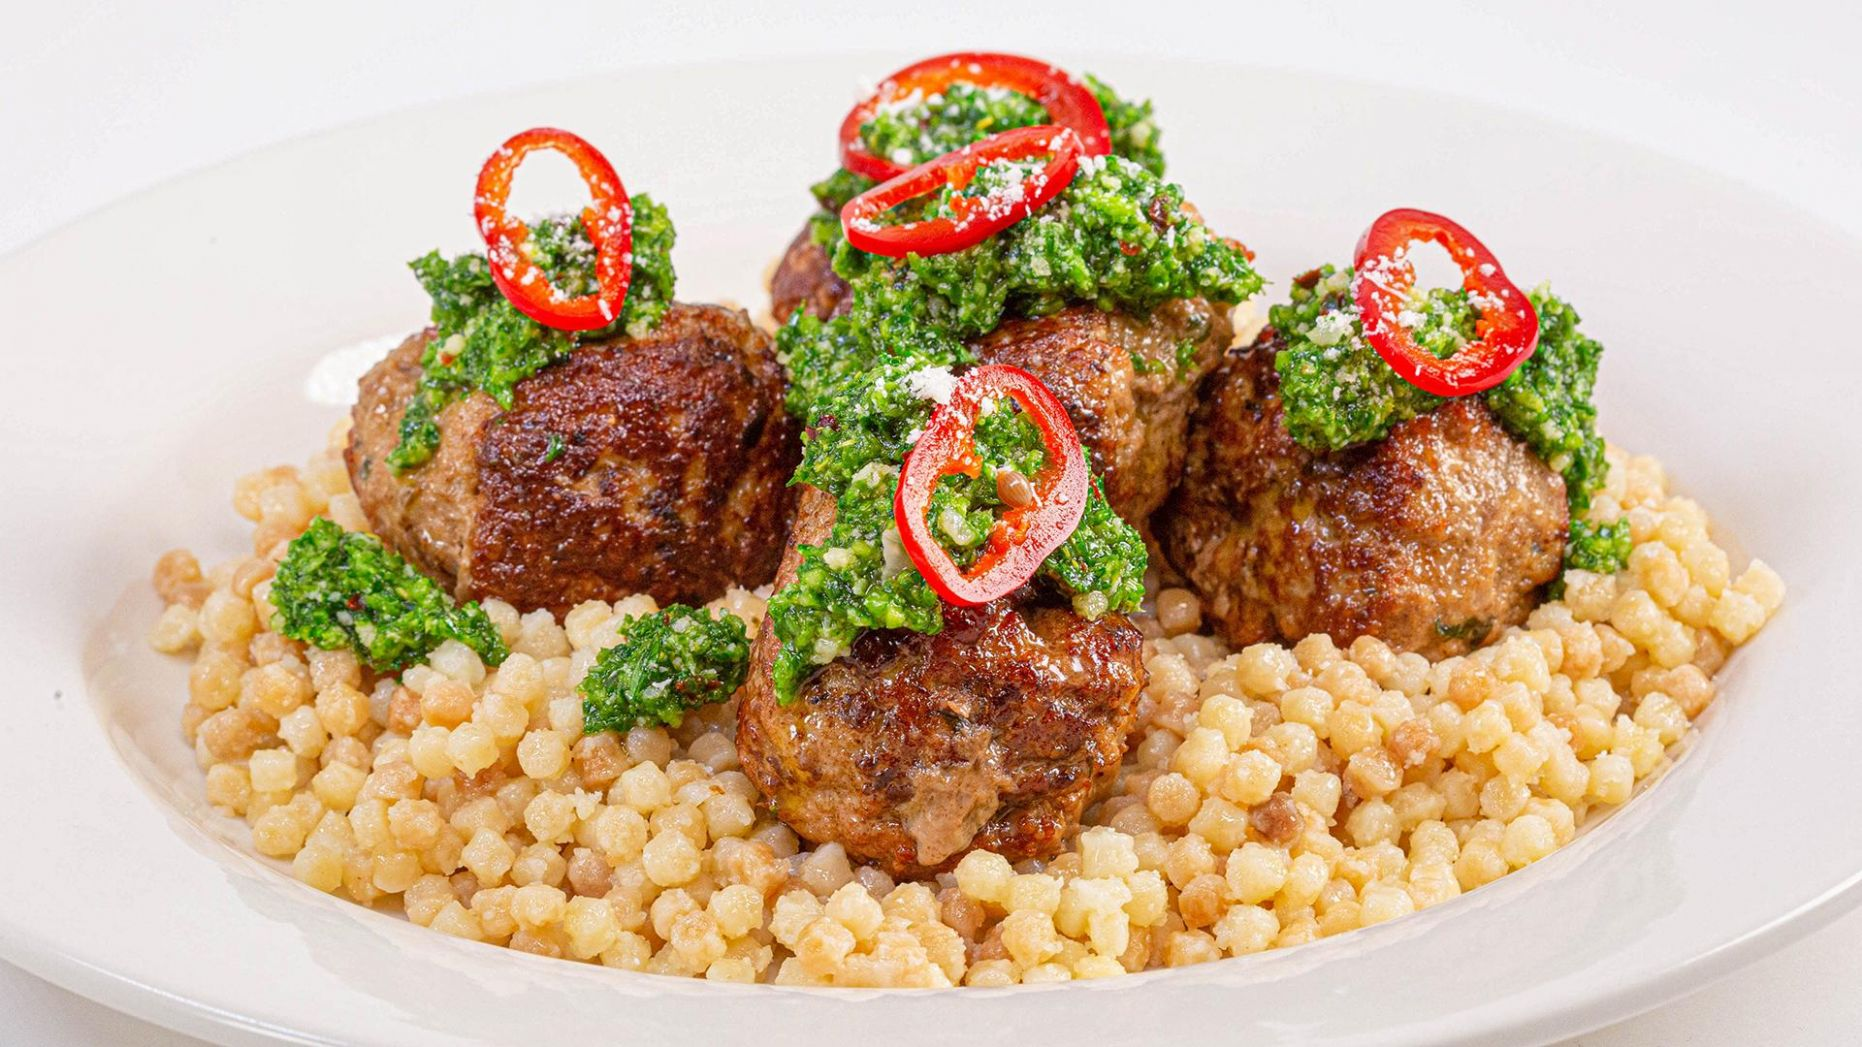 Pork & Veal Meatballs with Fregola Pasta + Broccoli Rabe Salsa Verde |  Scott Conant